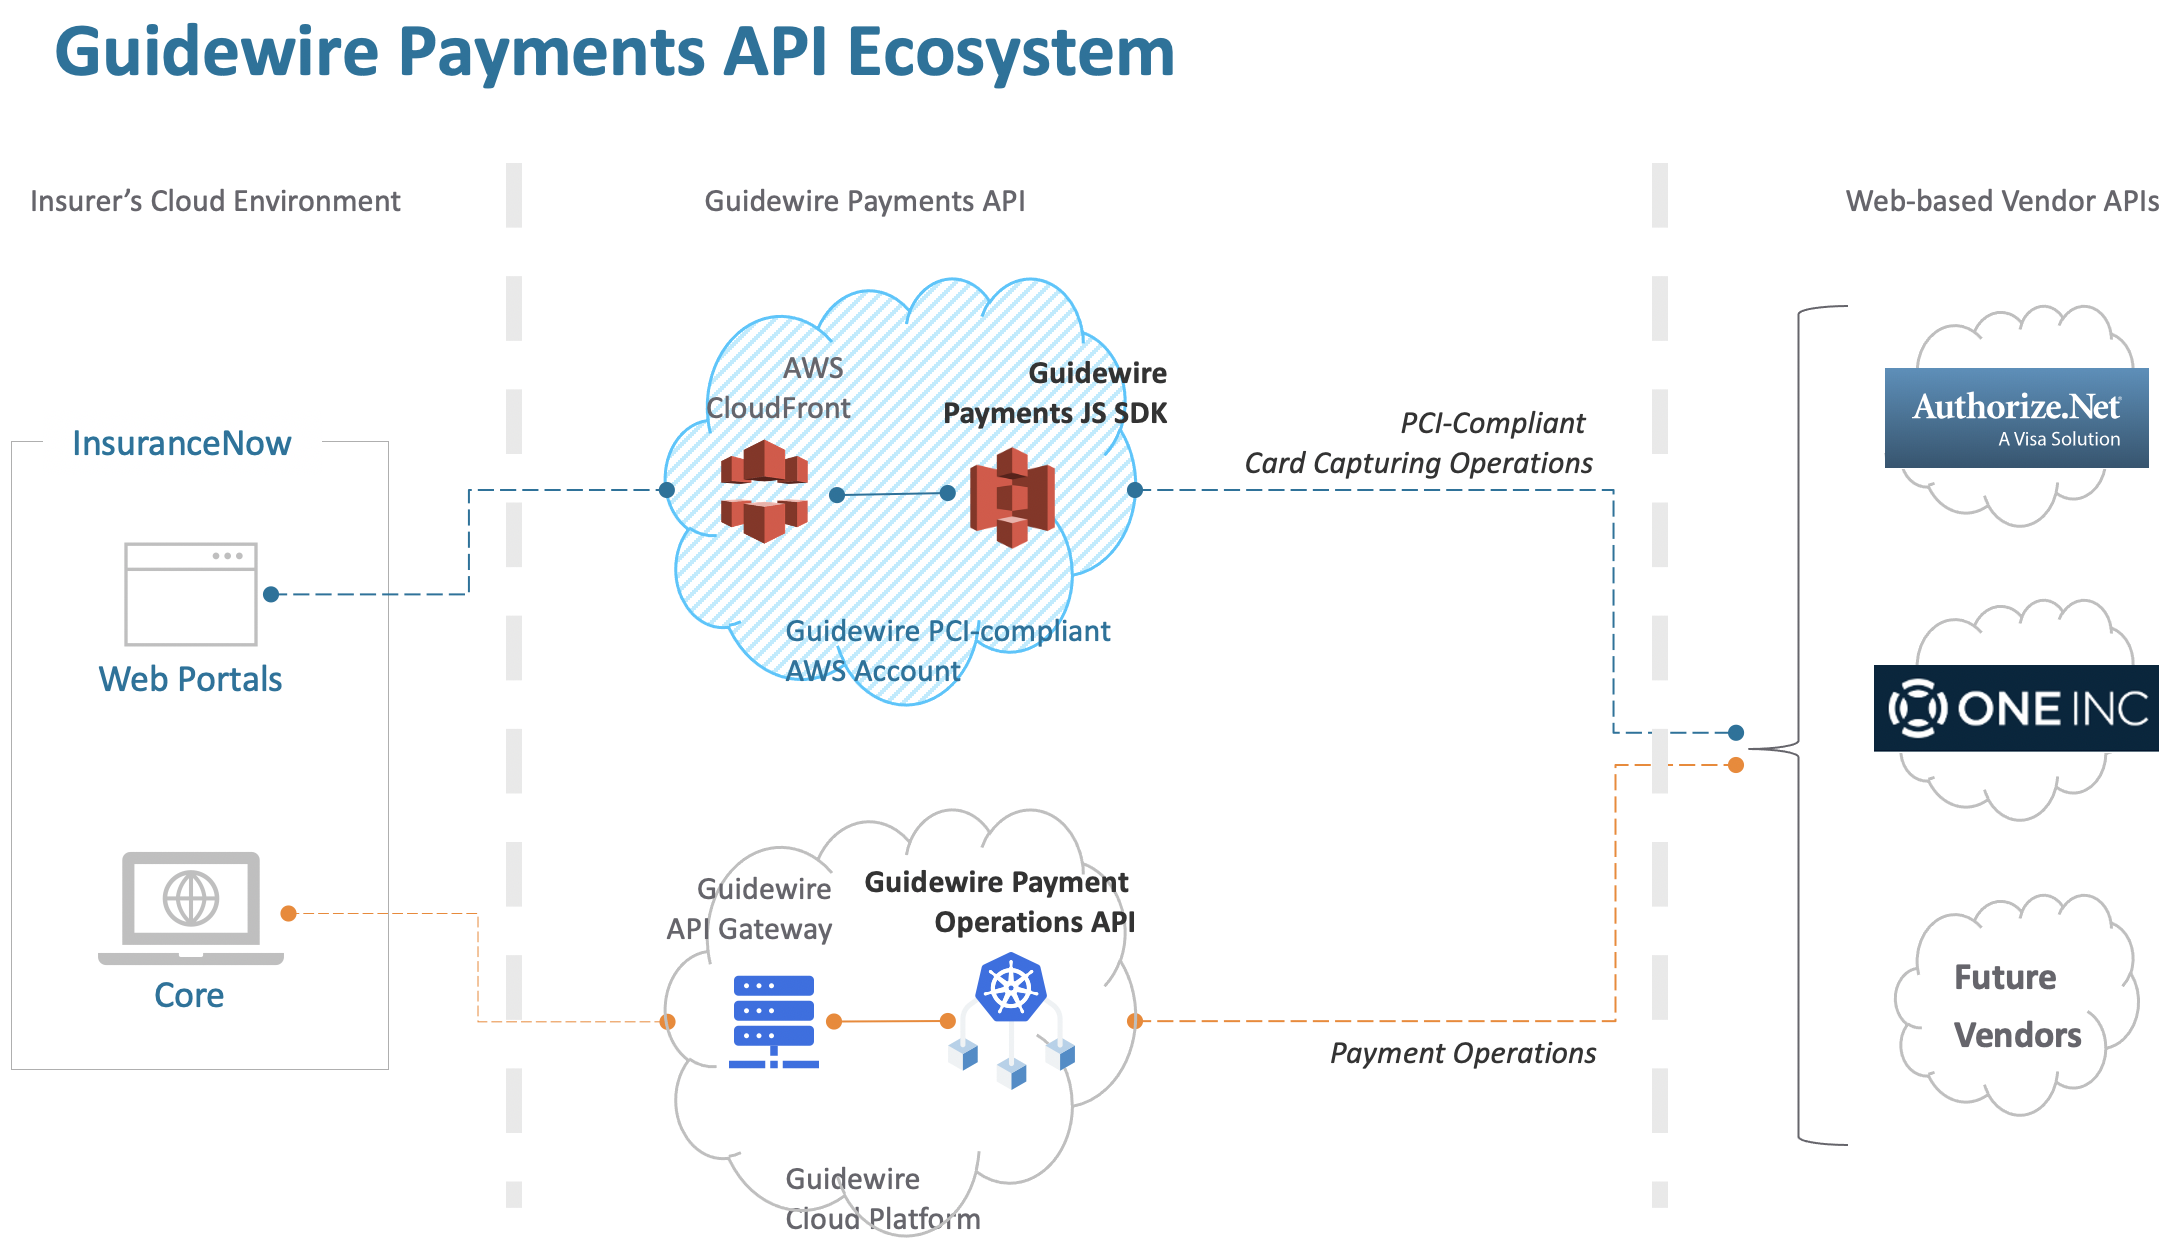 Guidewire Payments API Architecture